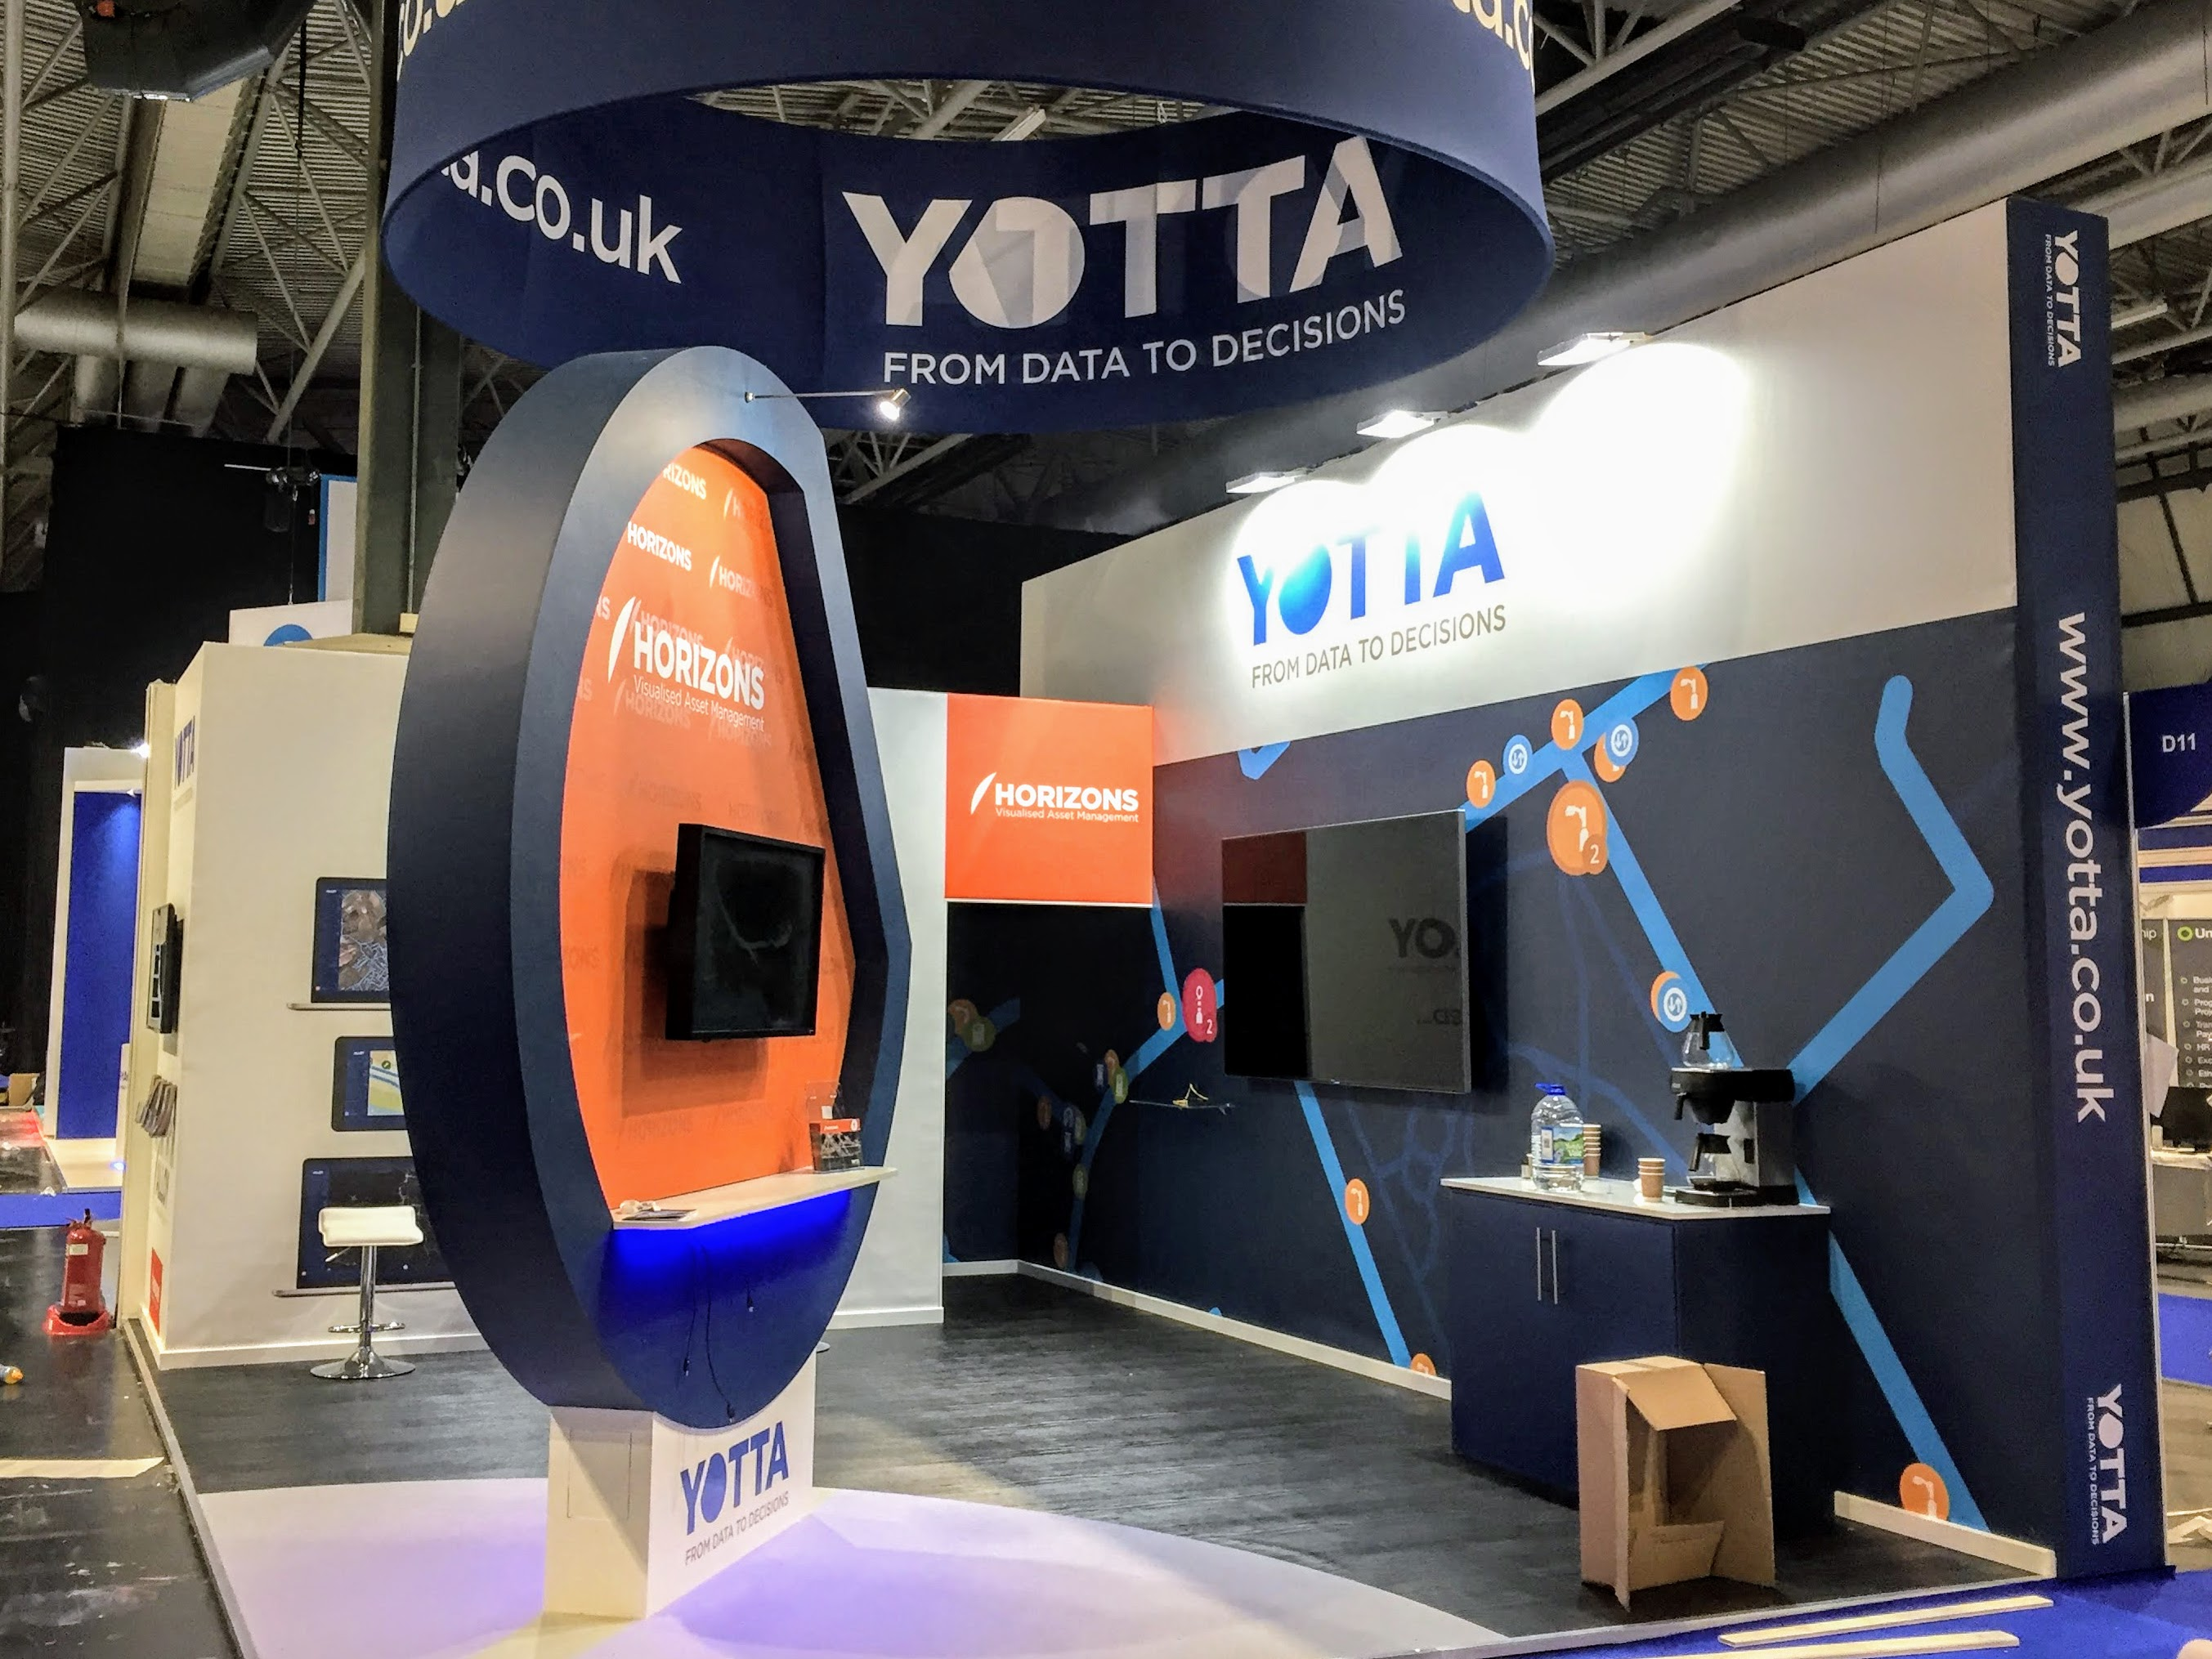 Yotta Exhibition Stand by Oaks Exhibitions